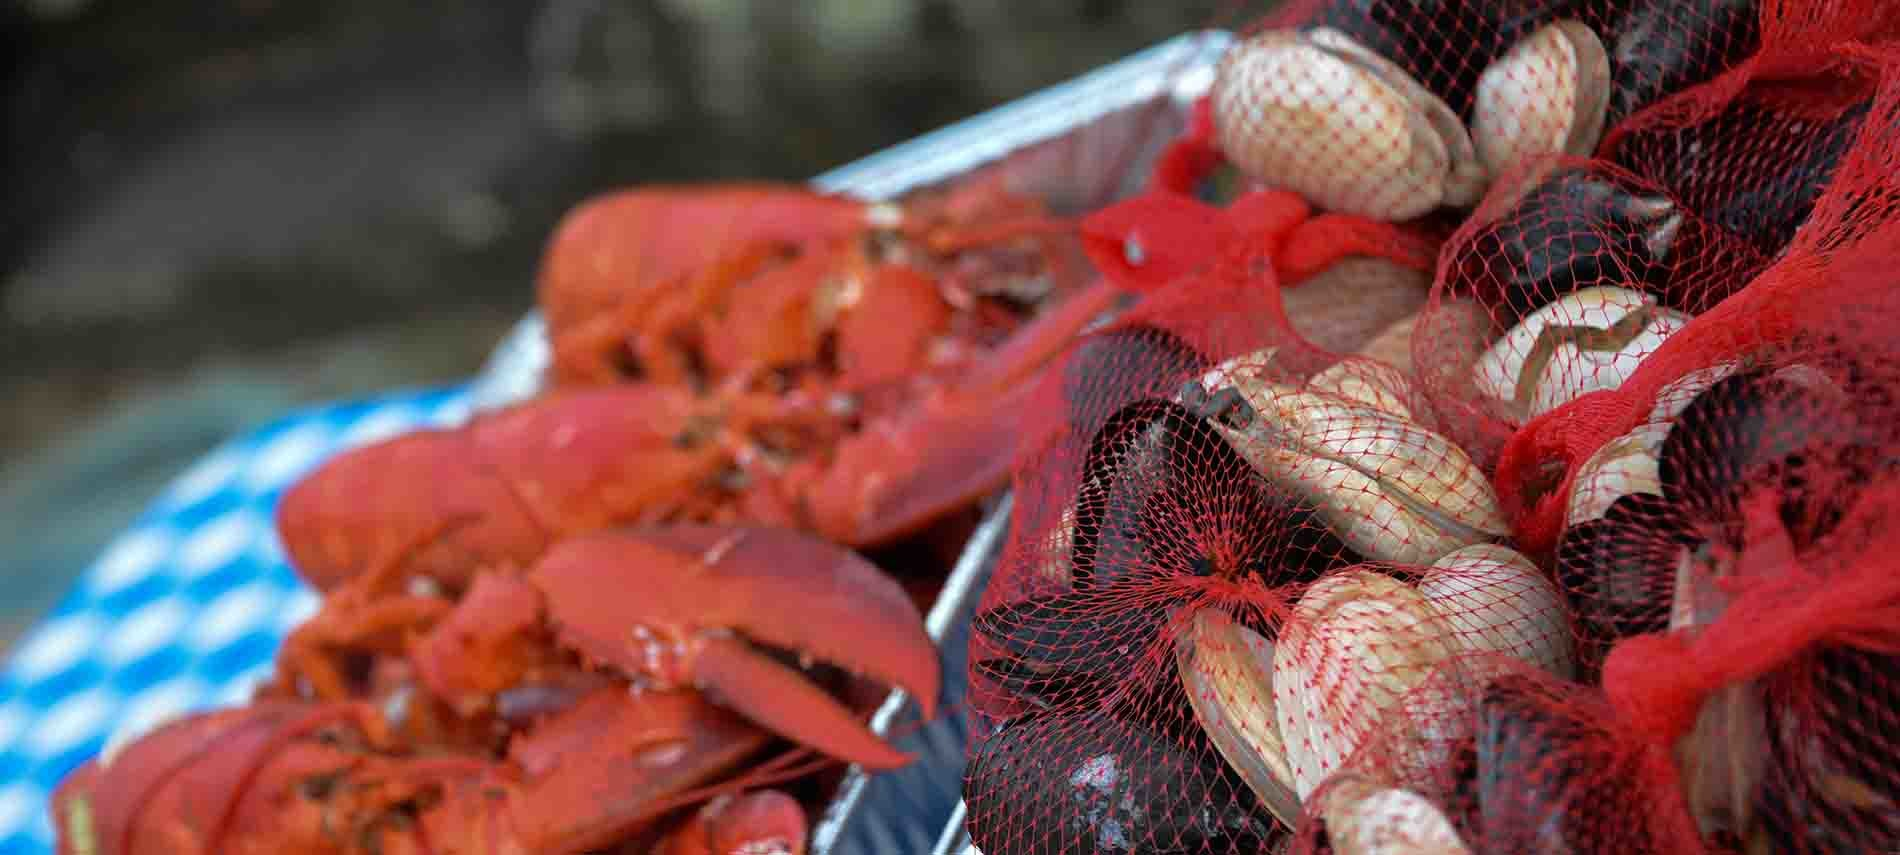 Lobster in a pan and shellfish in red mesh bags on a table